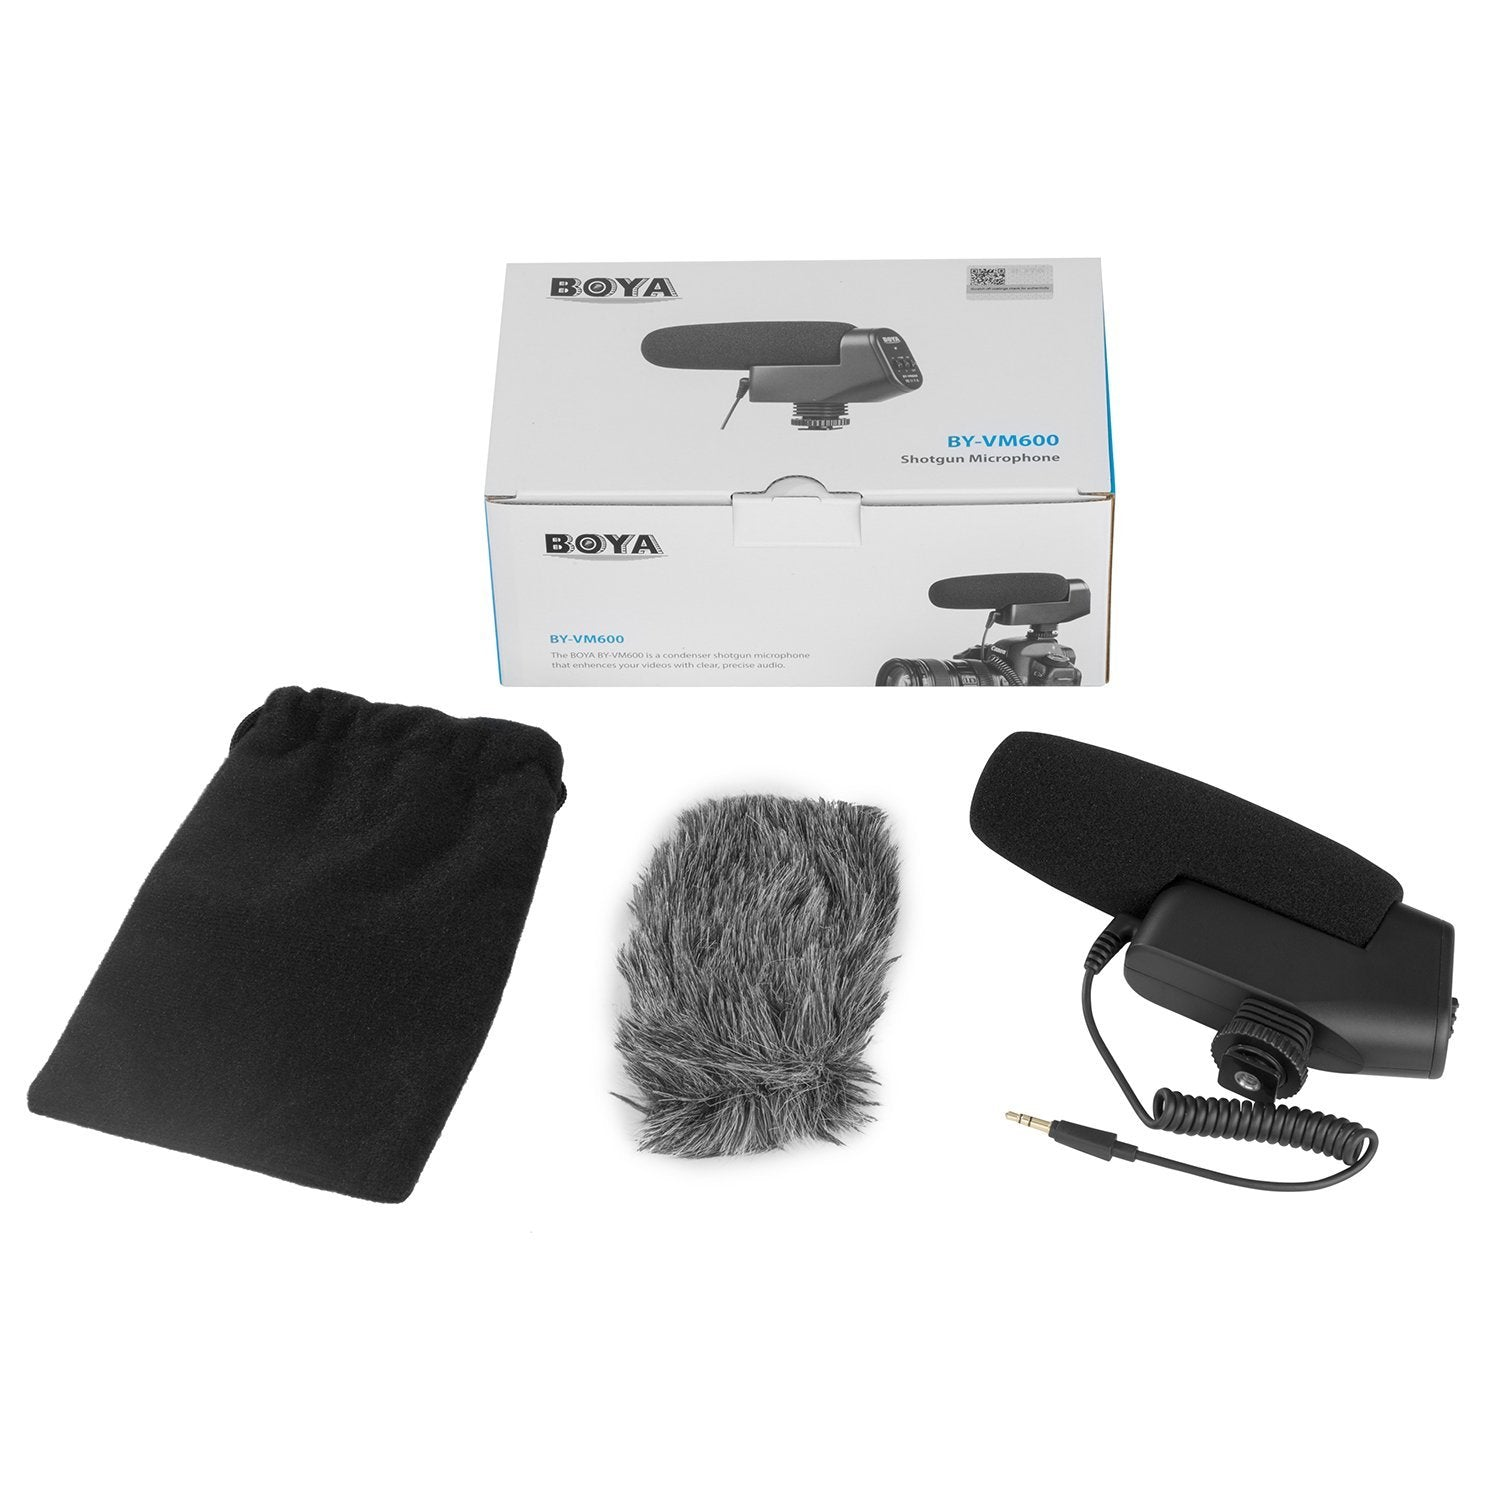 Professional Shotgun Condenser Microphone - BOYA BY-VM600 - CLEARANCE SALE!